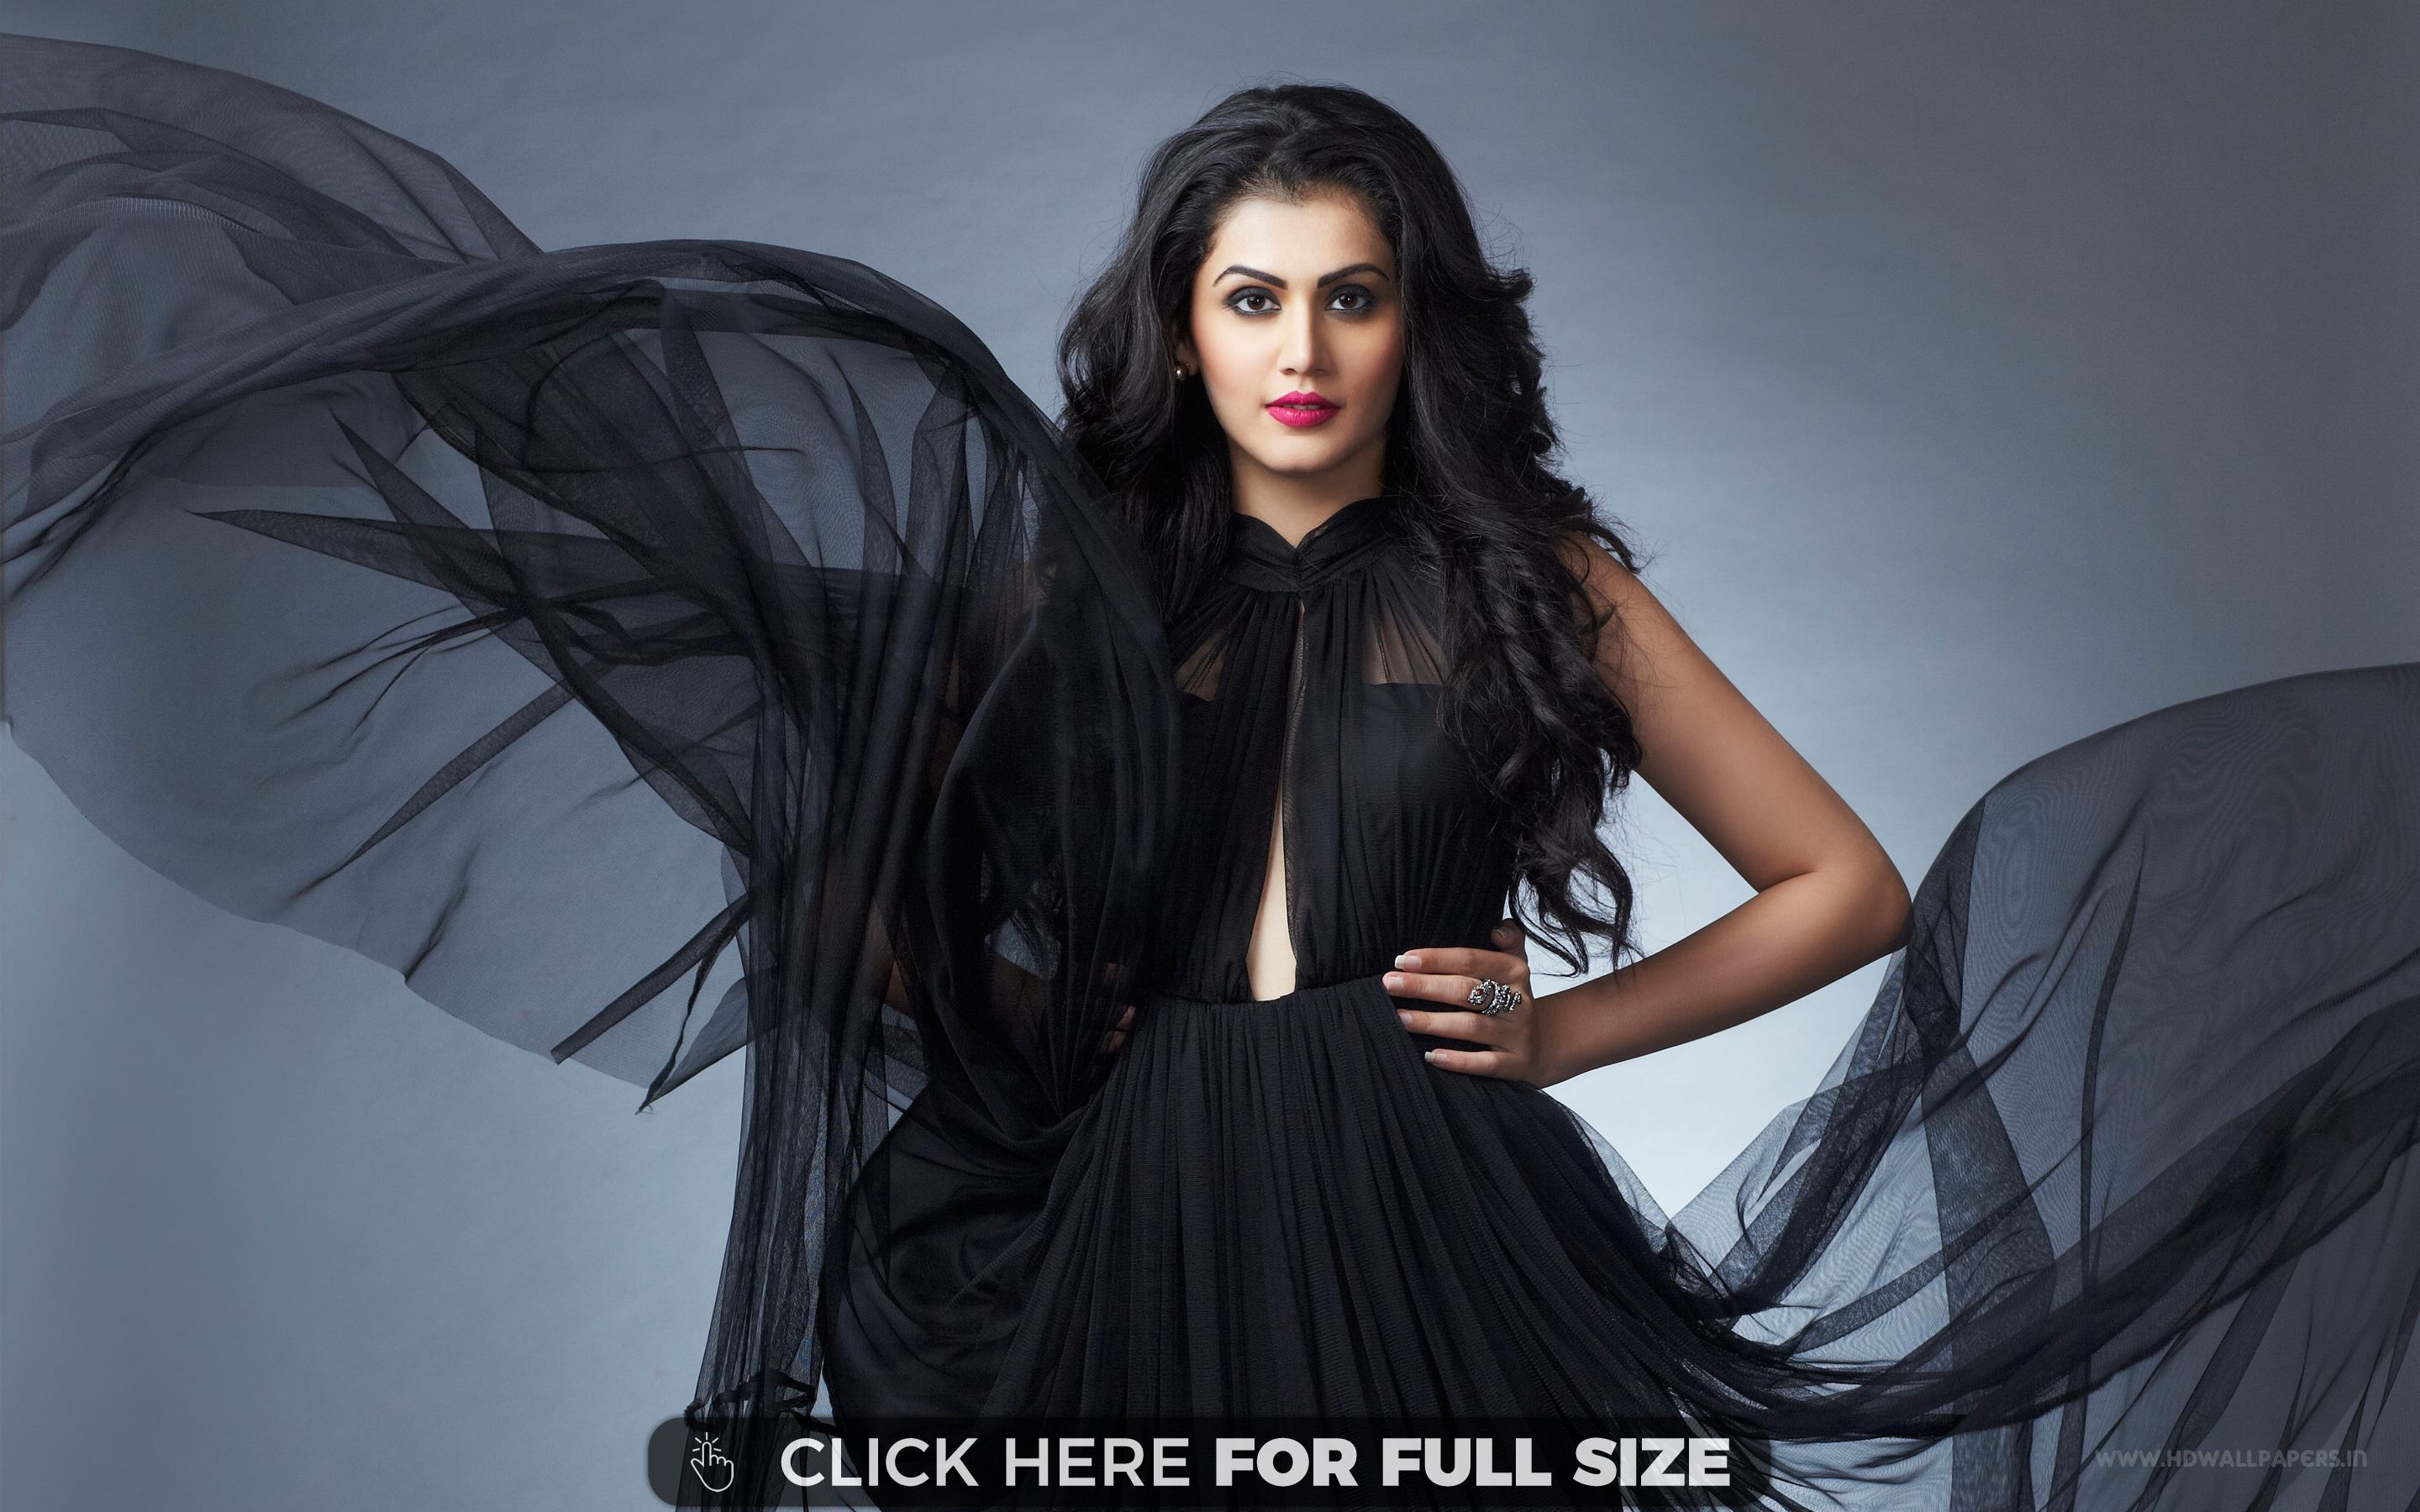 2880x1800 - Tapsee pannu Wallpapers 19